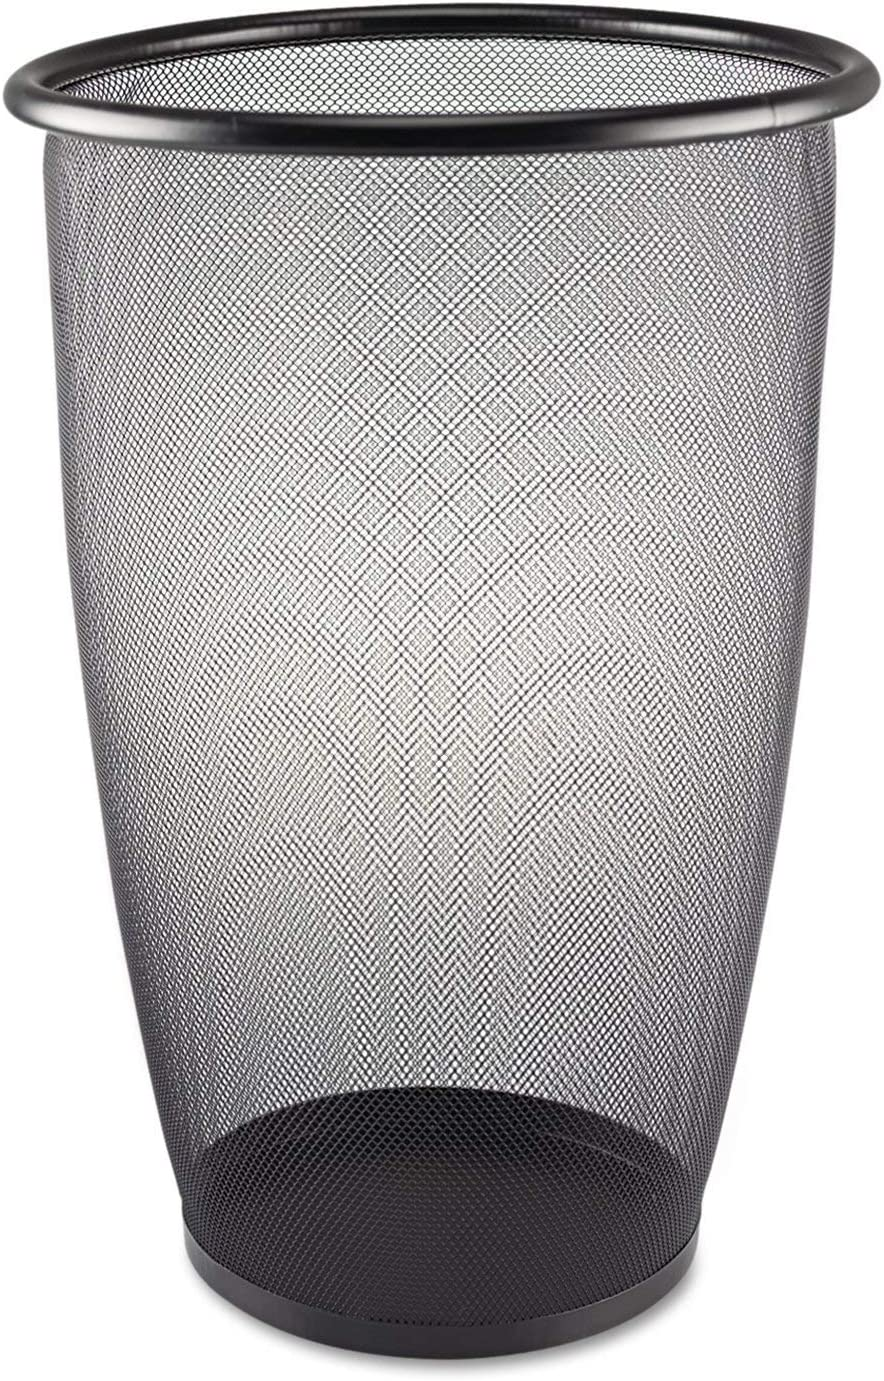 Safco Super sale period Popularity limited Products 9718BL Onyx Mesh Large Round 9-Gallo Wastebasket